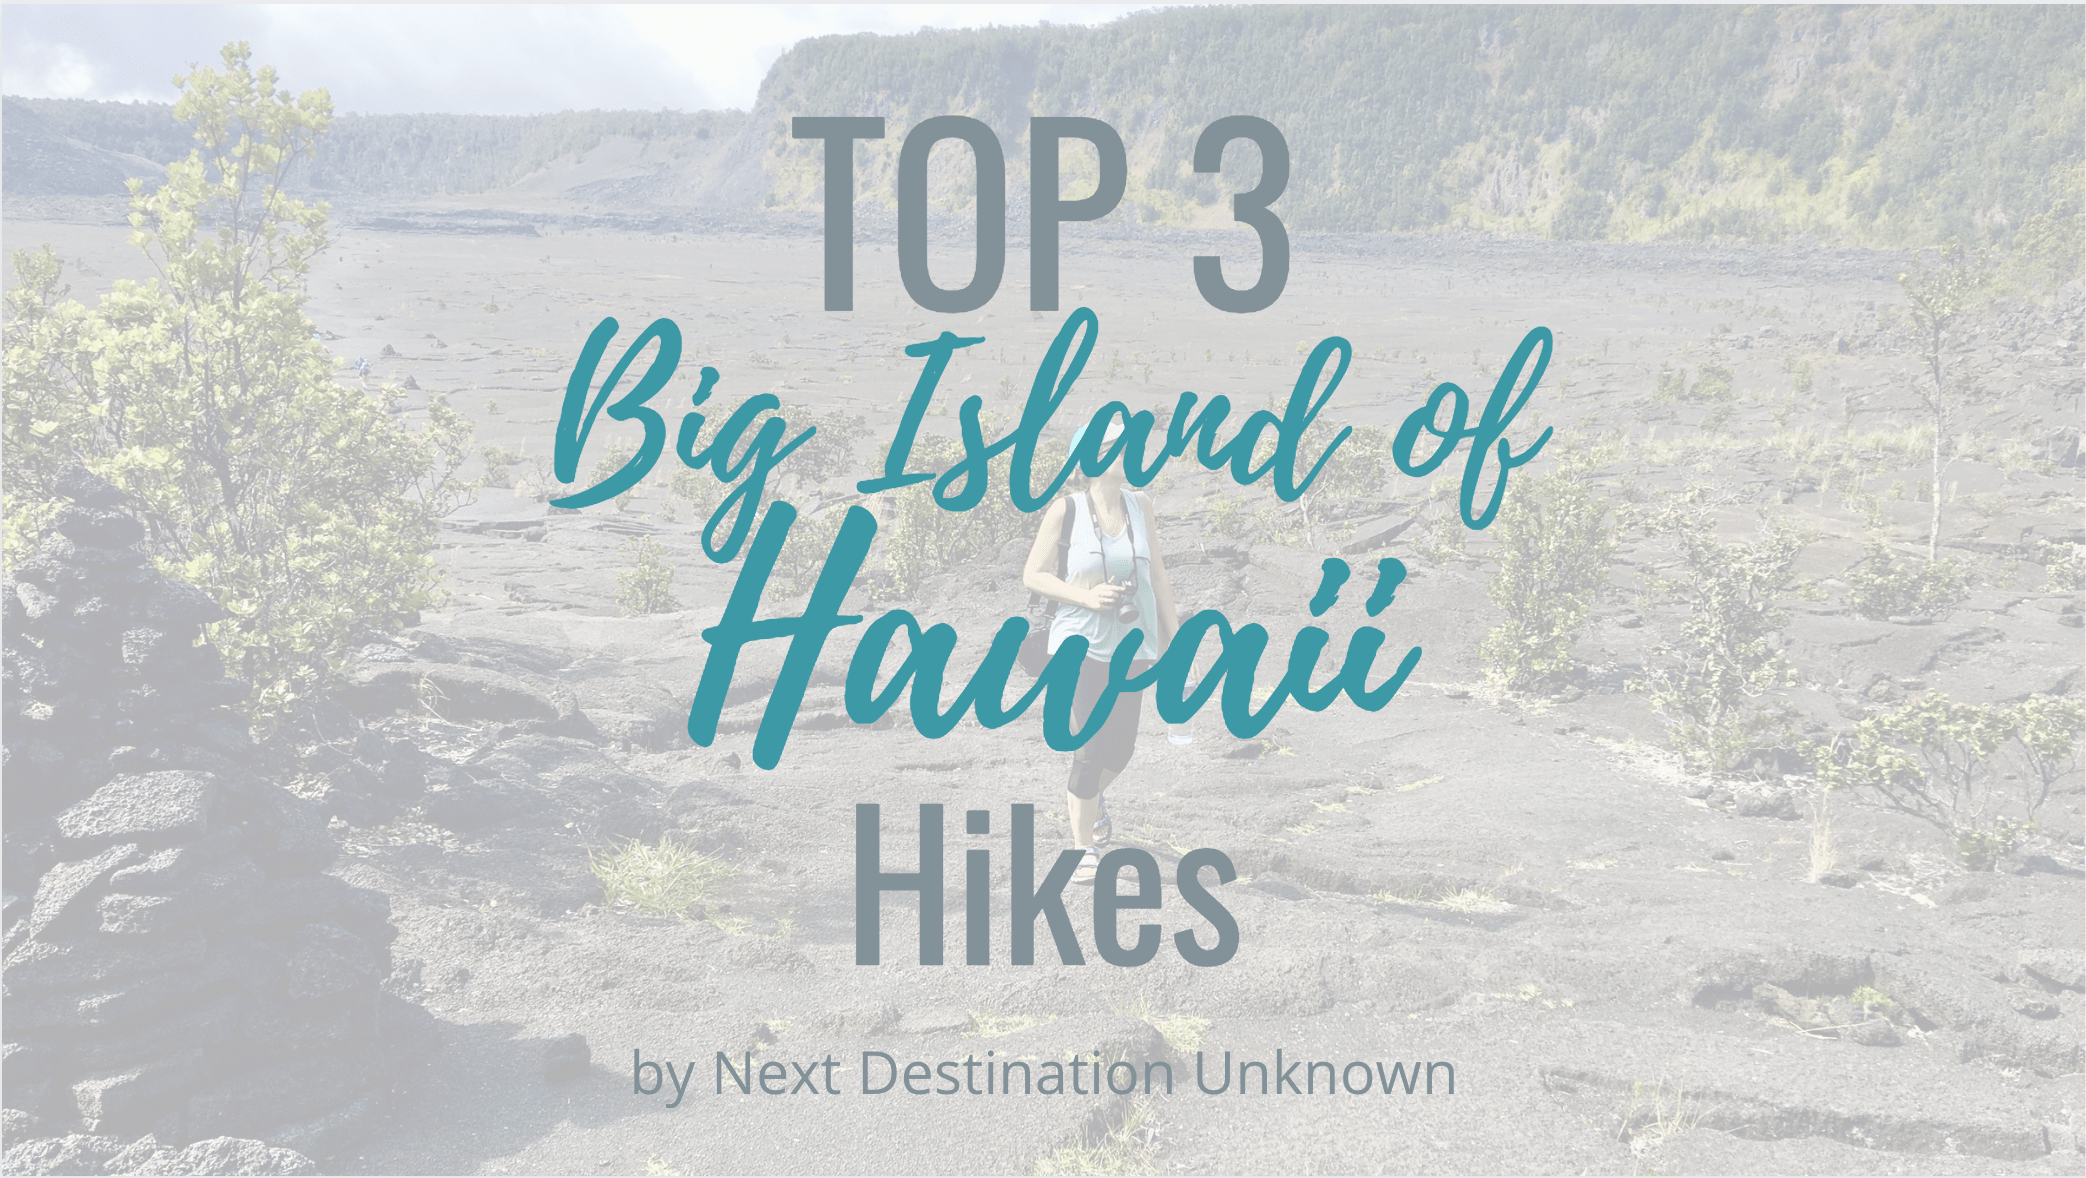 Top 3 Hikes on the Big Island of Hawaii